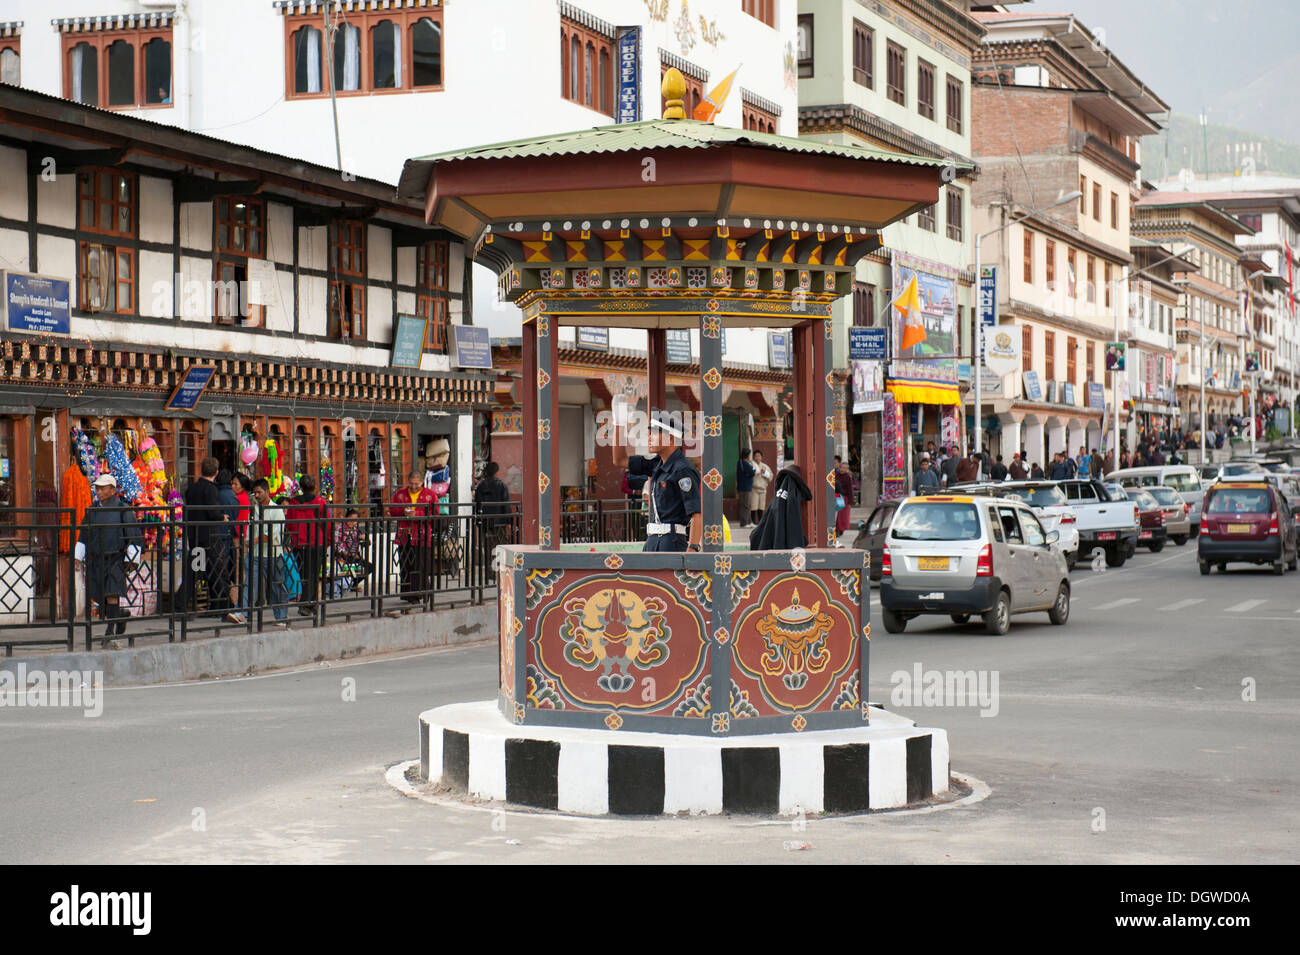 Traffic cop directing traffic by hand signal, Norzin Lam Street, town centre, capital of Thimphu, Kingdom of Bhutan, South Asia - Stock Image